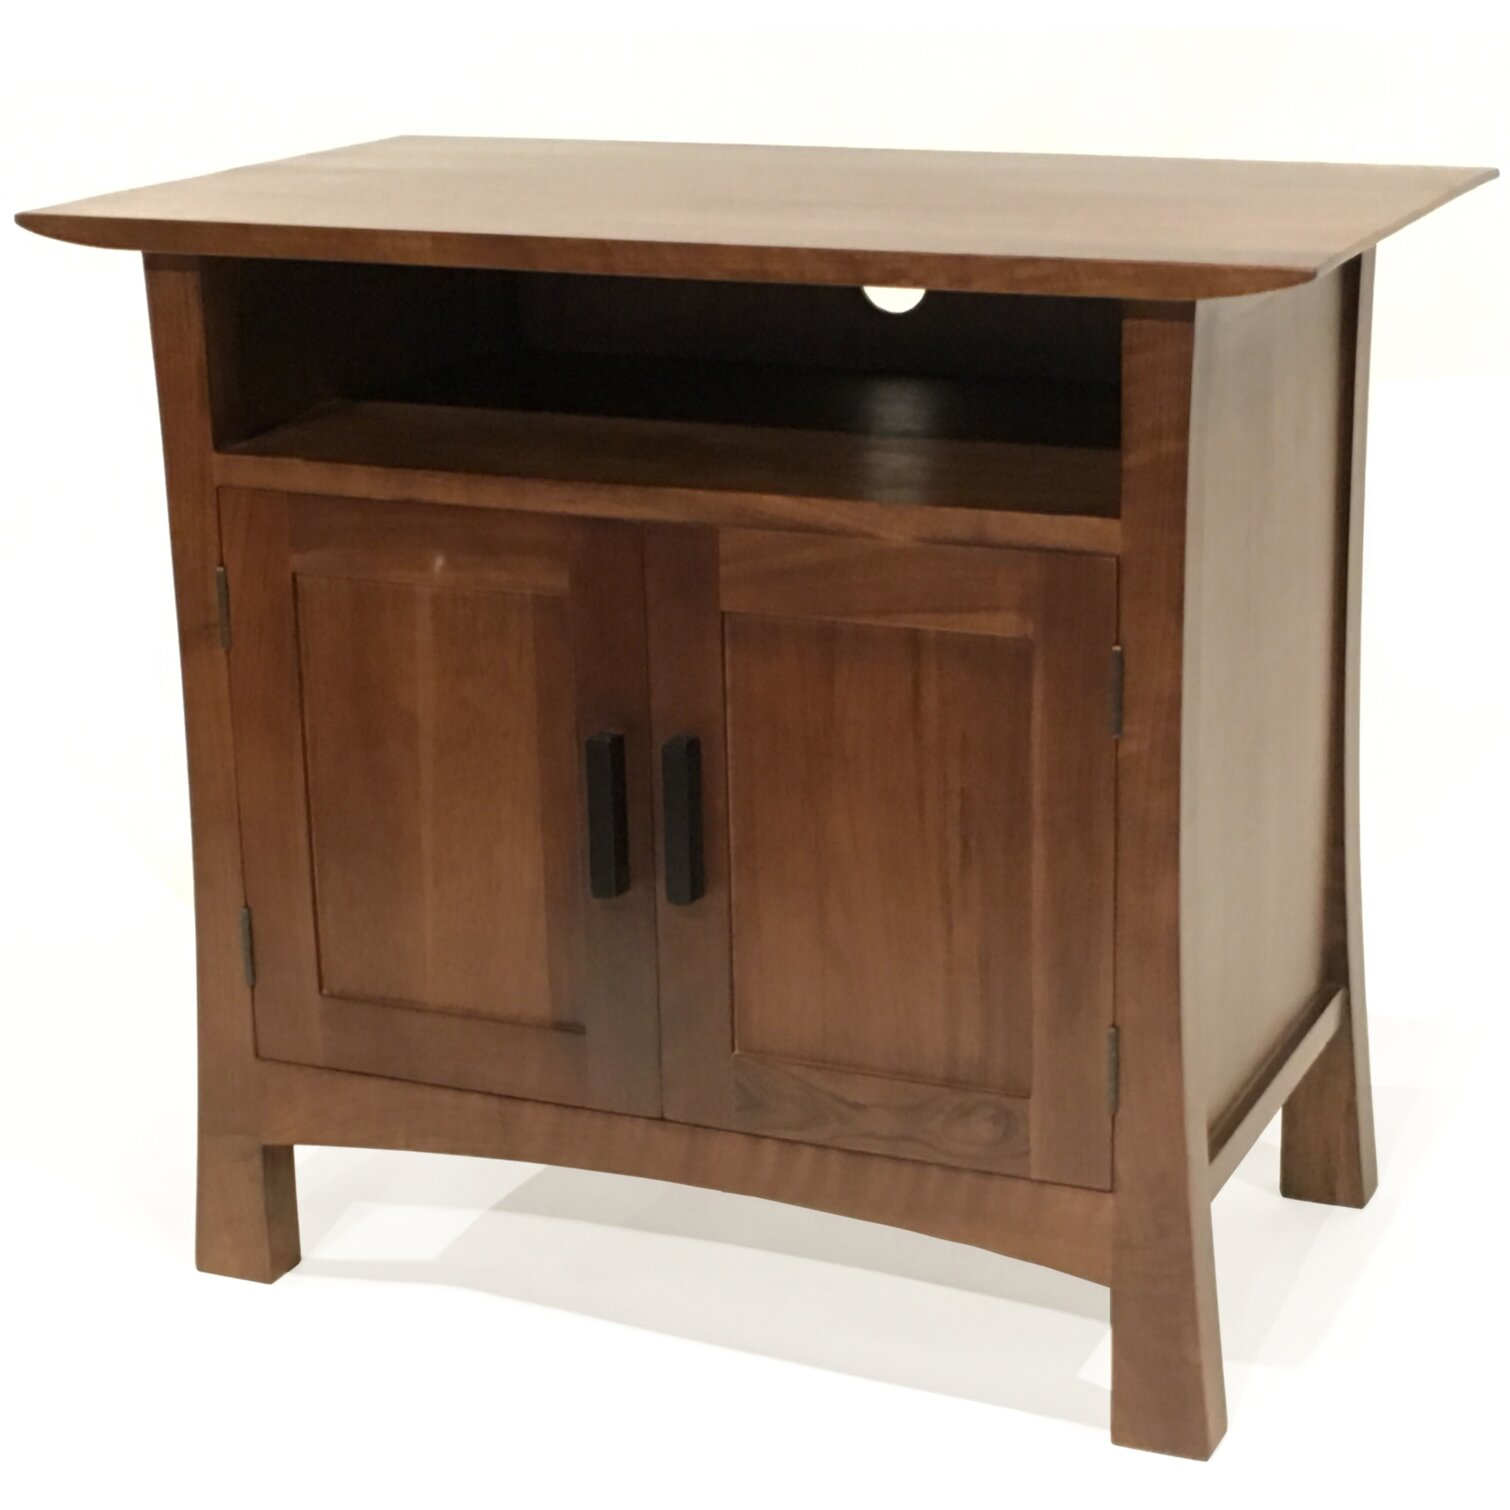 Gingko Home Furnishings Saito Tv Stand Wayfair